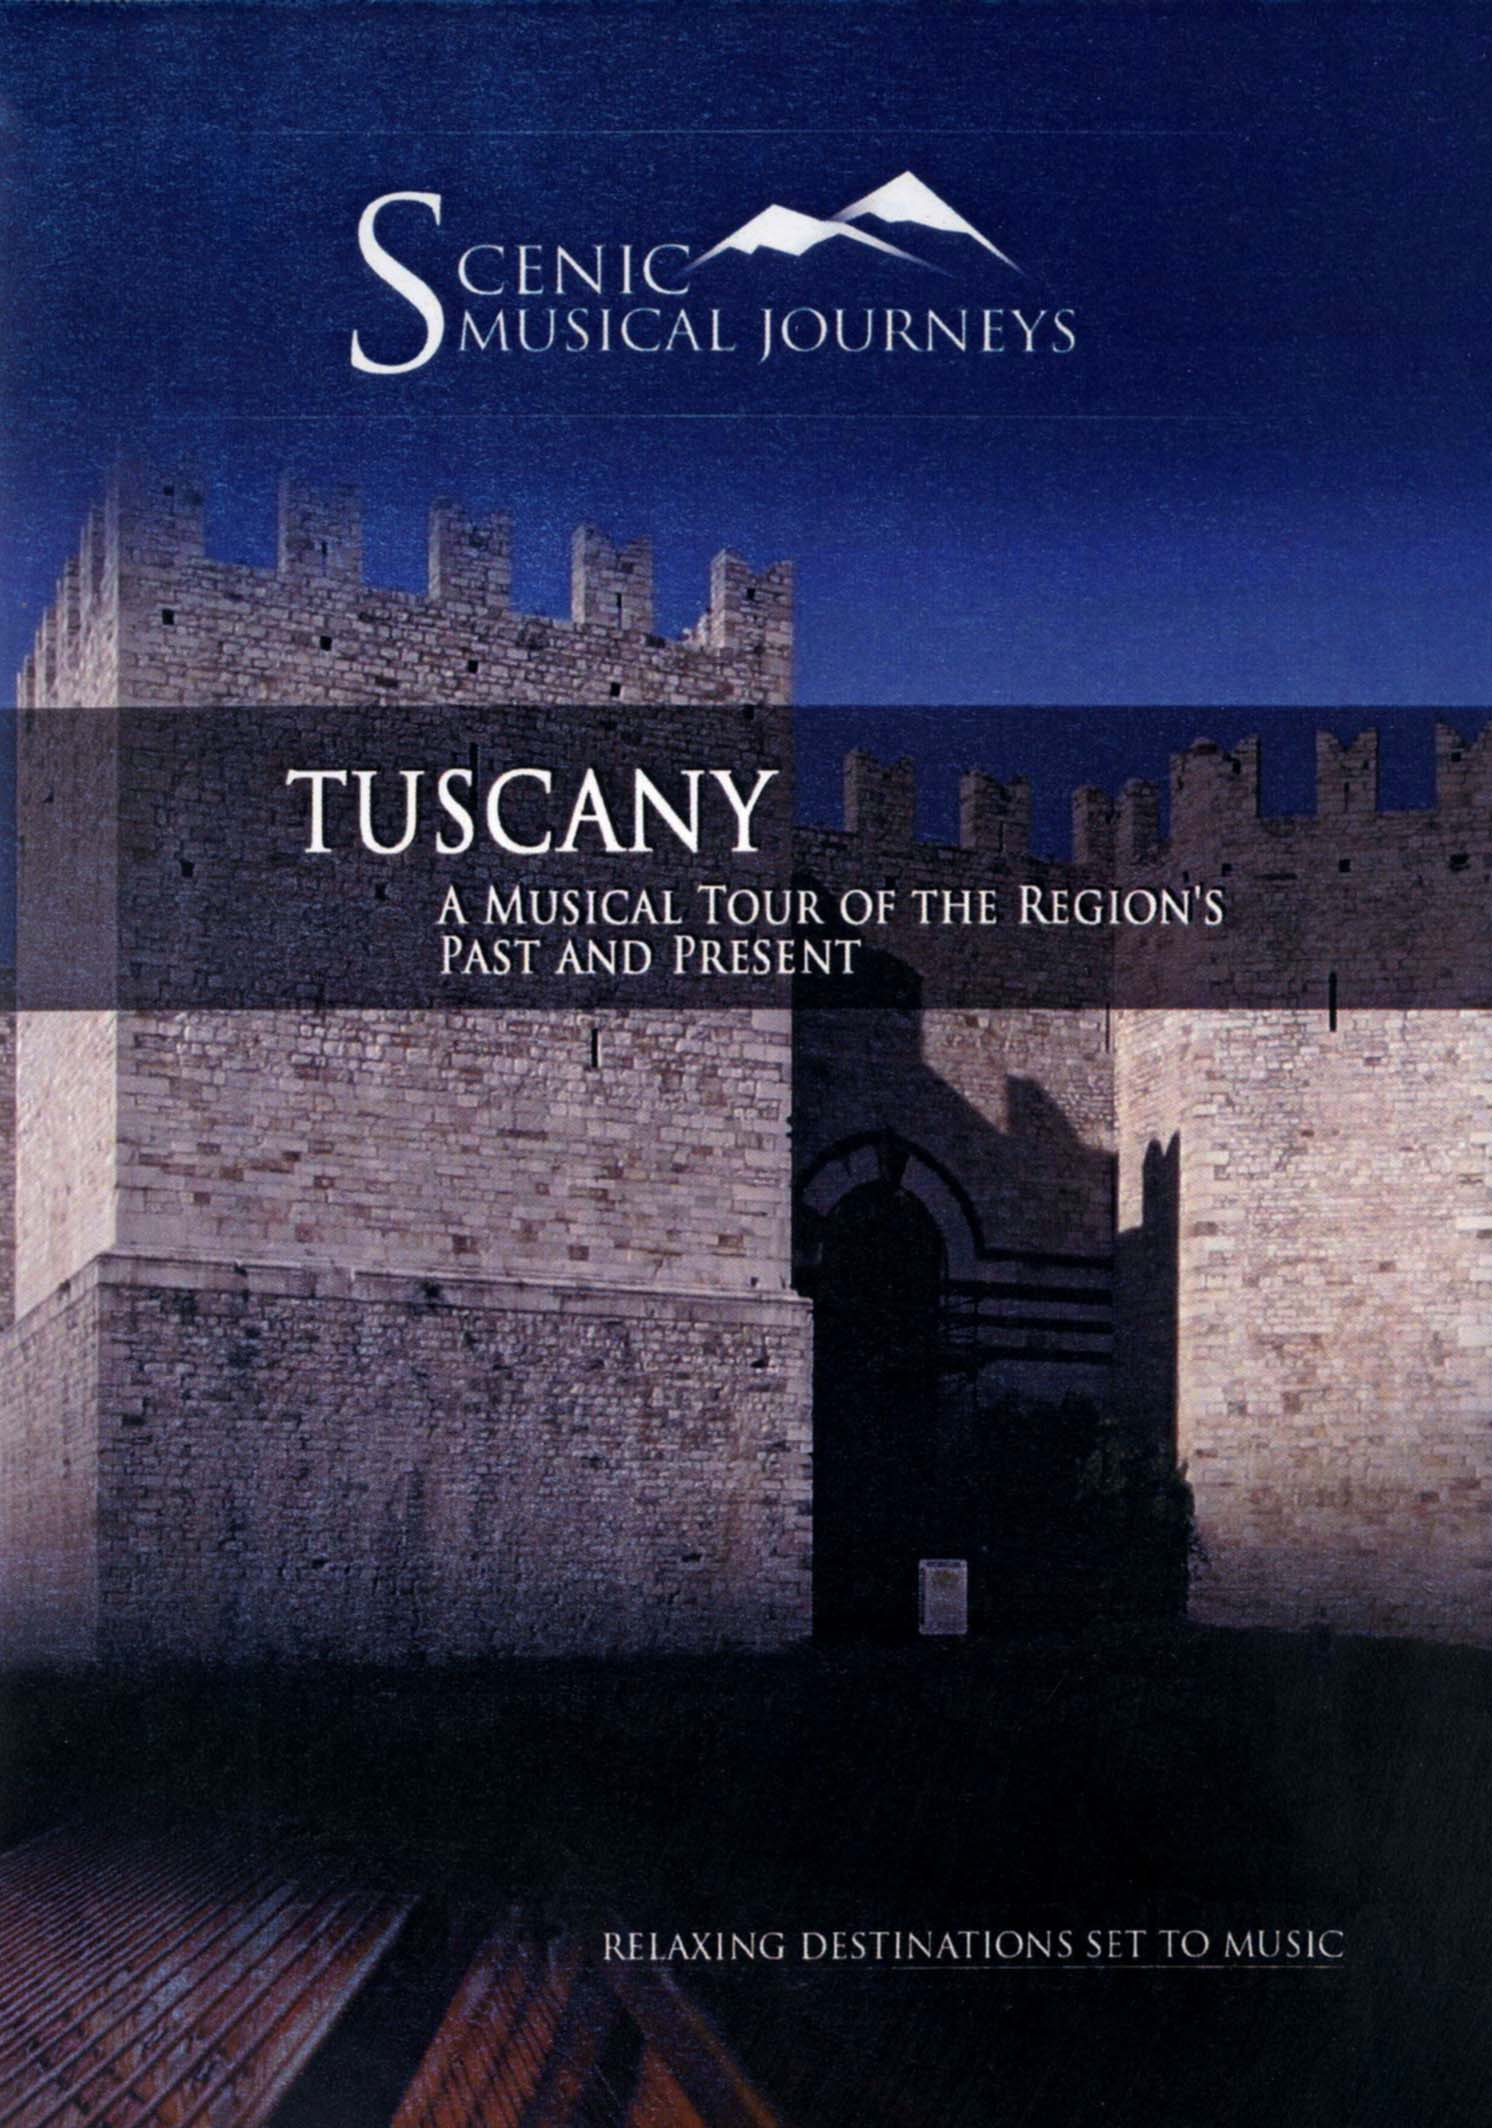 Scenic Musical Journeys: Tuscany - A Musical Tour of the Region's Past and Present